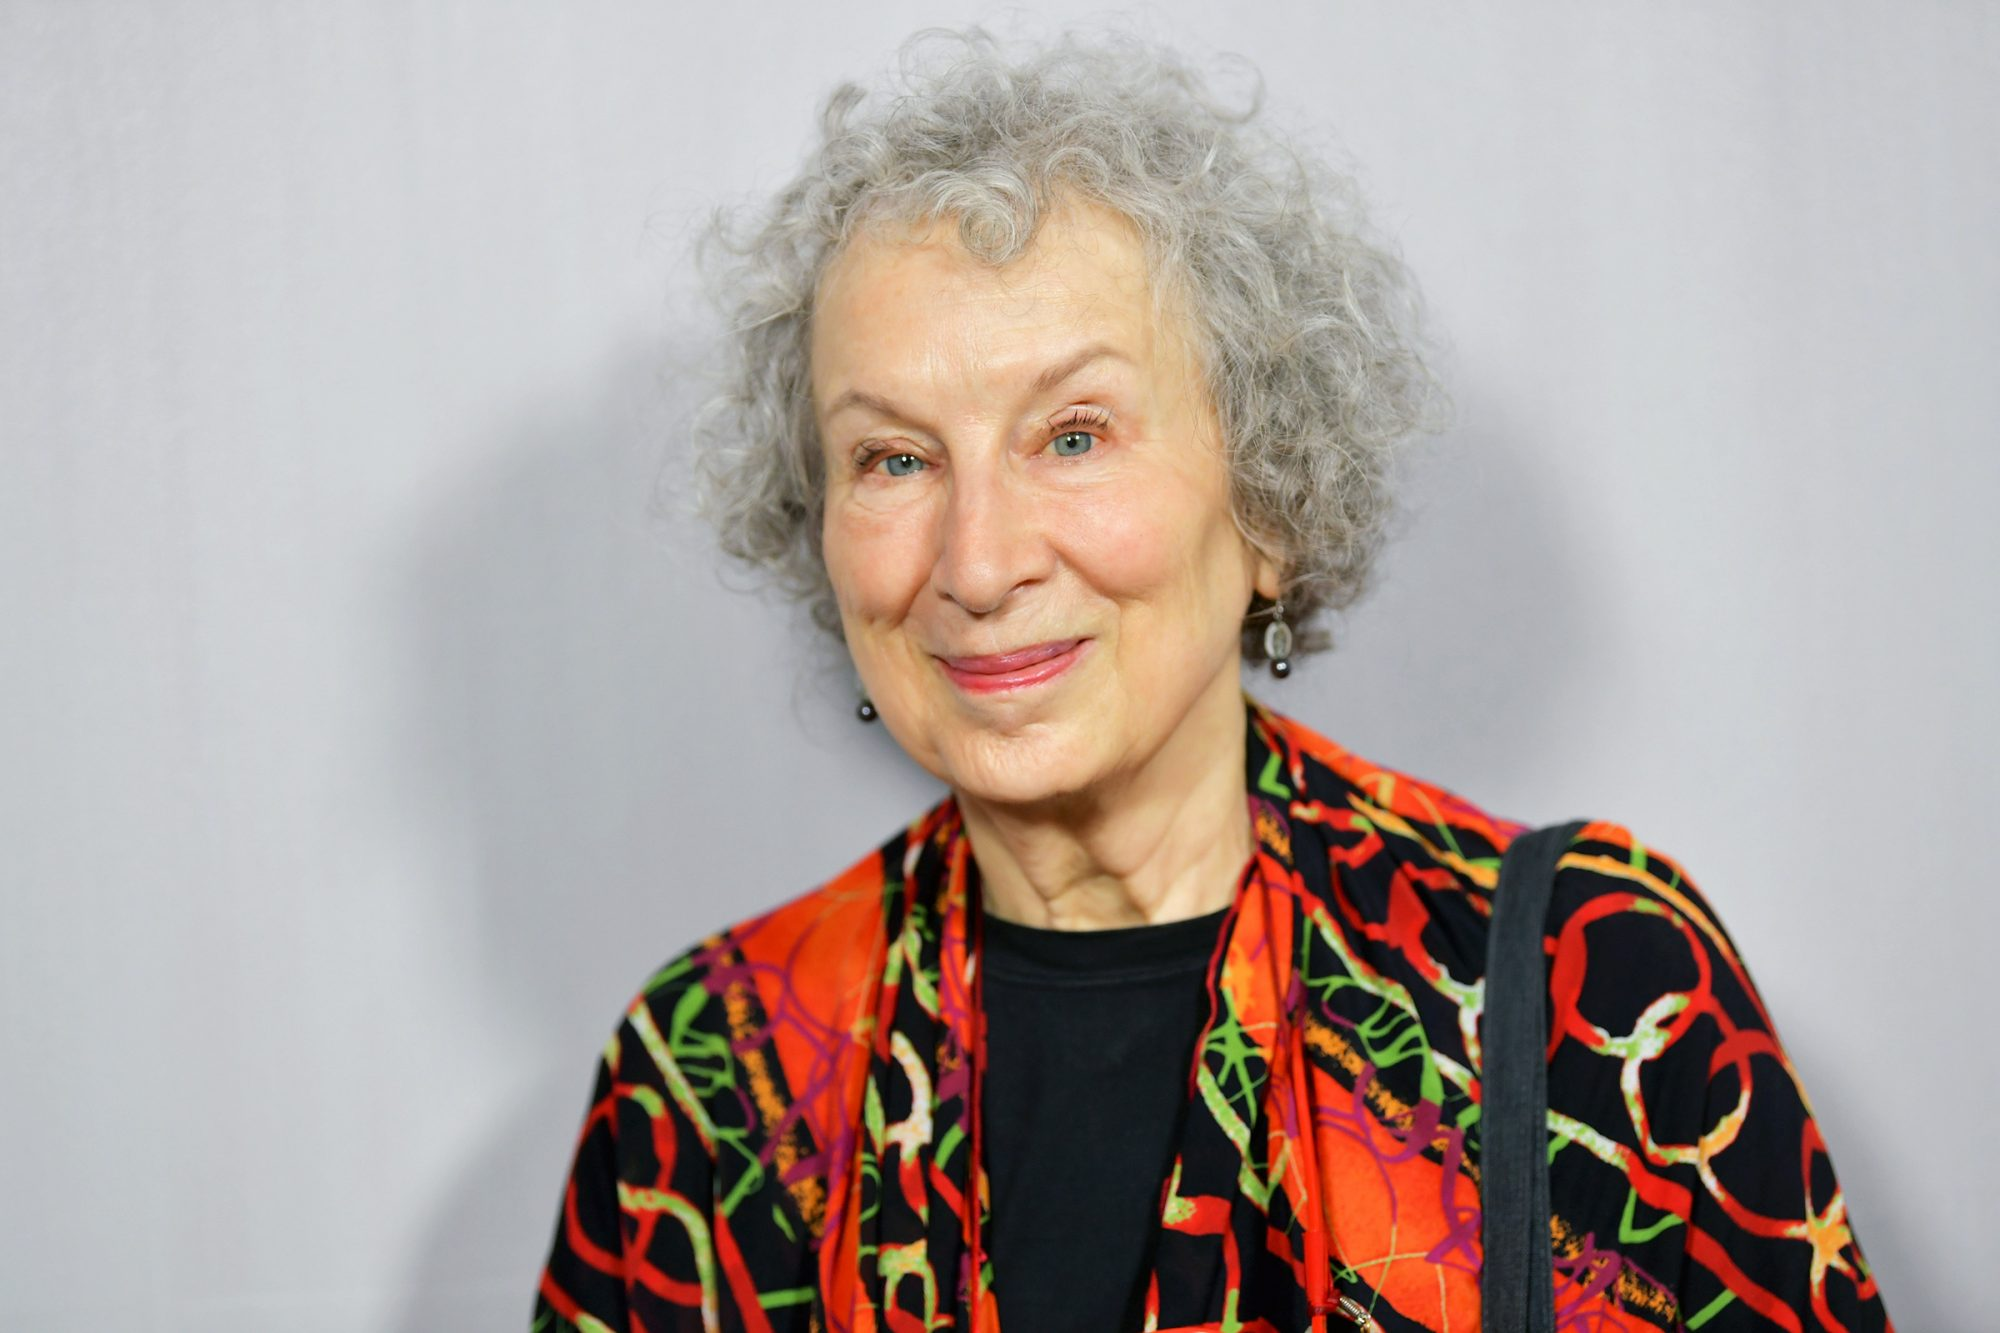 Margaret Atwood attends the Hammer Museum 16th Annual Gala in the Garden with generous support from South Coast Plaza at the Hammer Museum on October 14, 2018 in Los Angeles, California